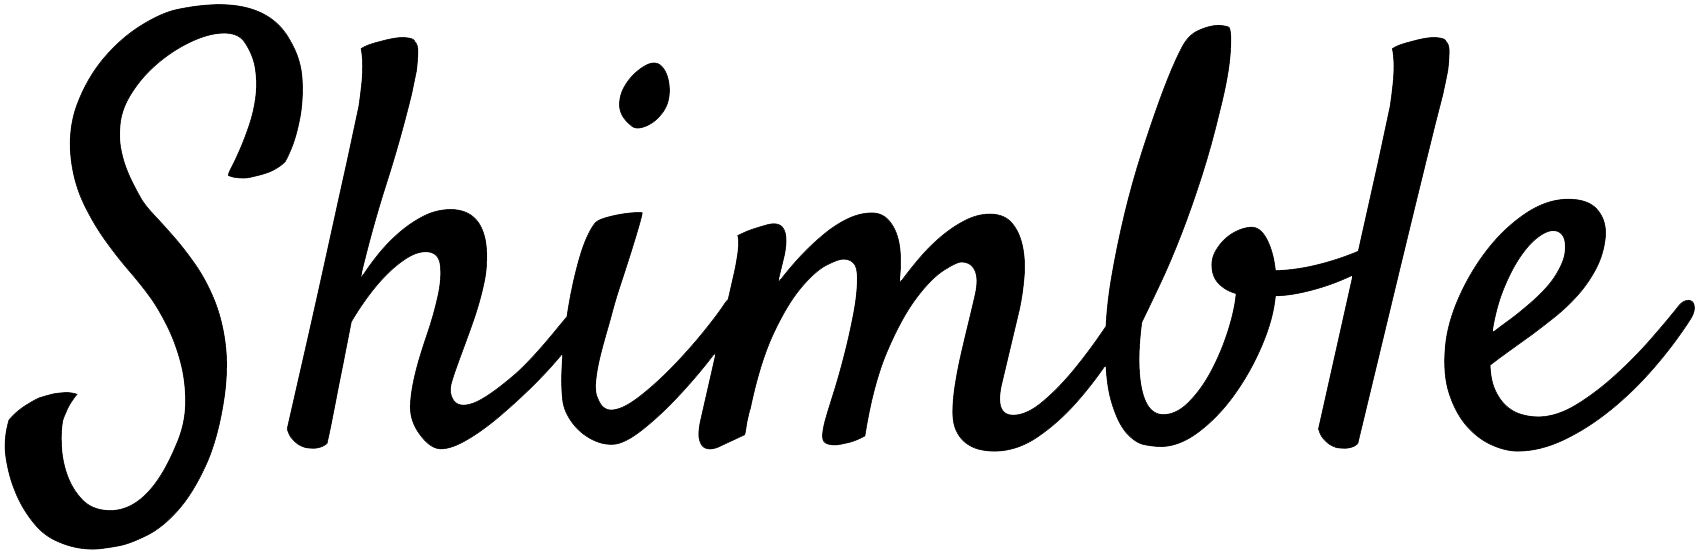 Shimble logo transparent.png